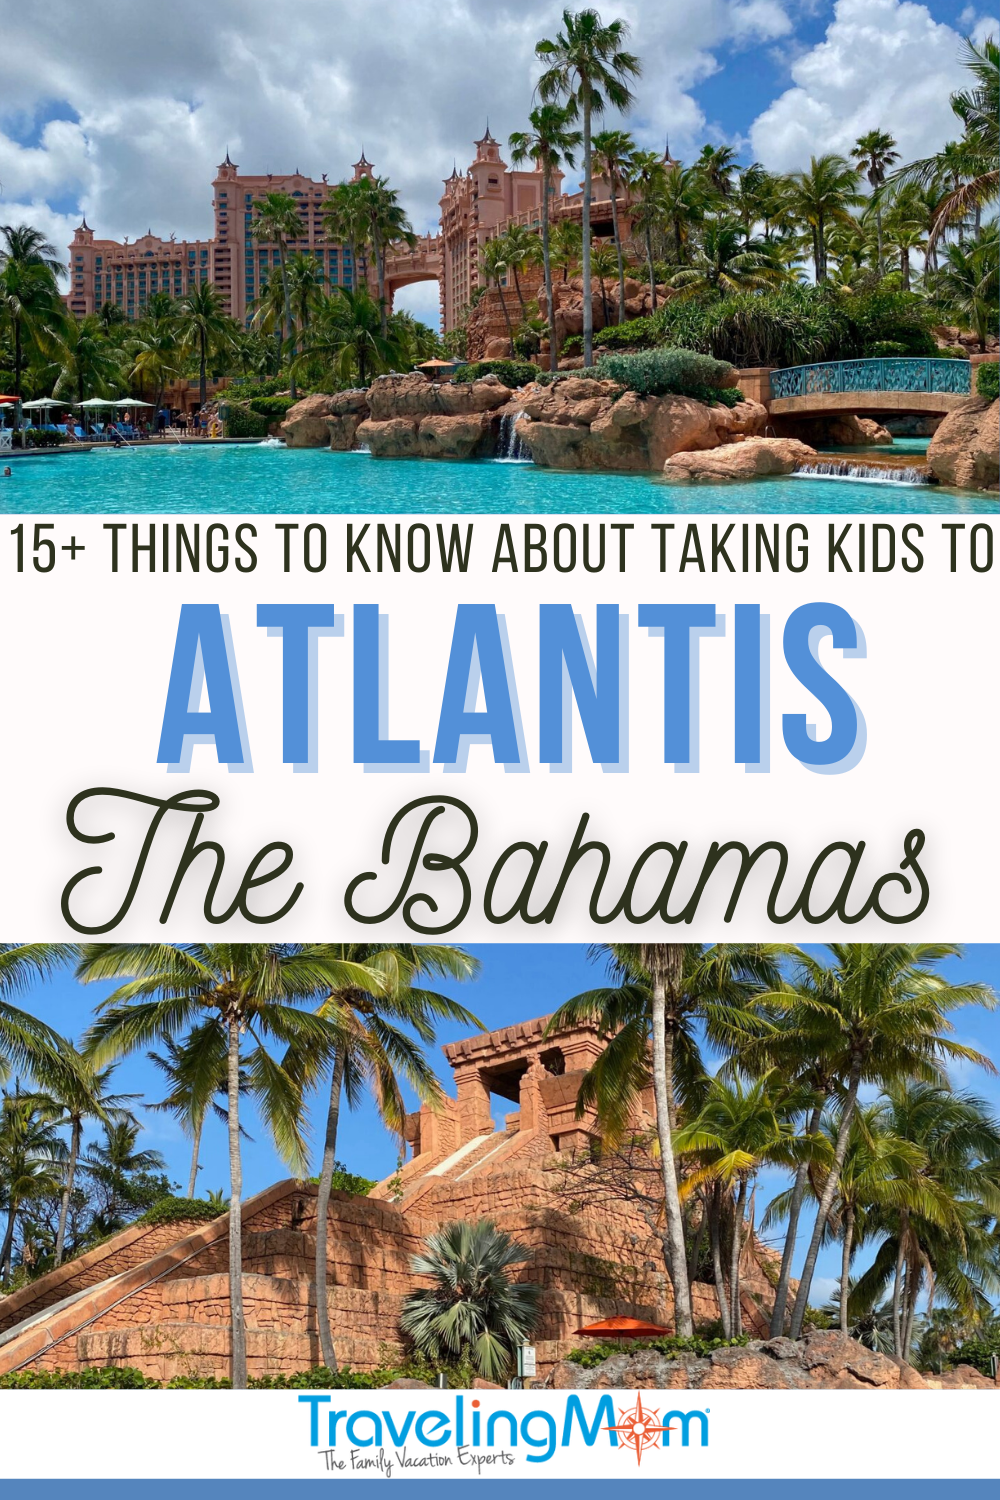 images of atlantis bahamas with text reading 15+ things to know about taking kids to Atlantis the bahamas